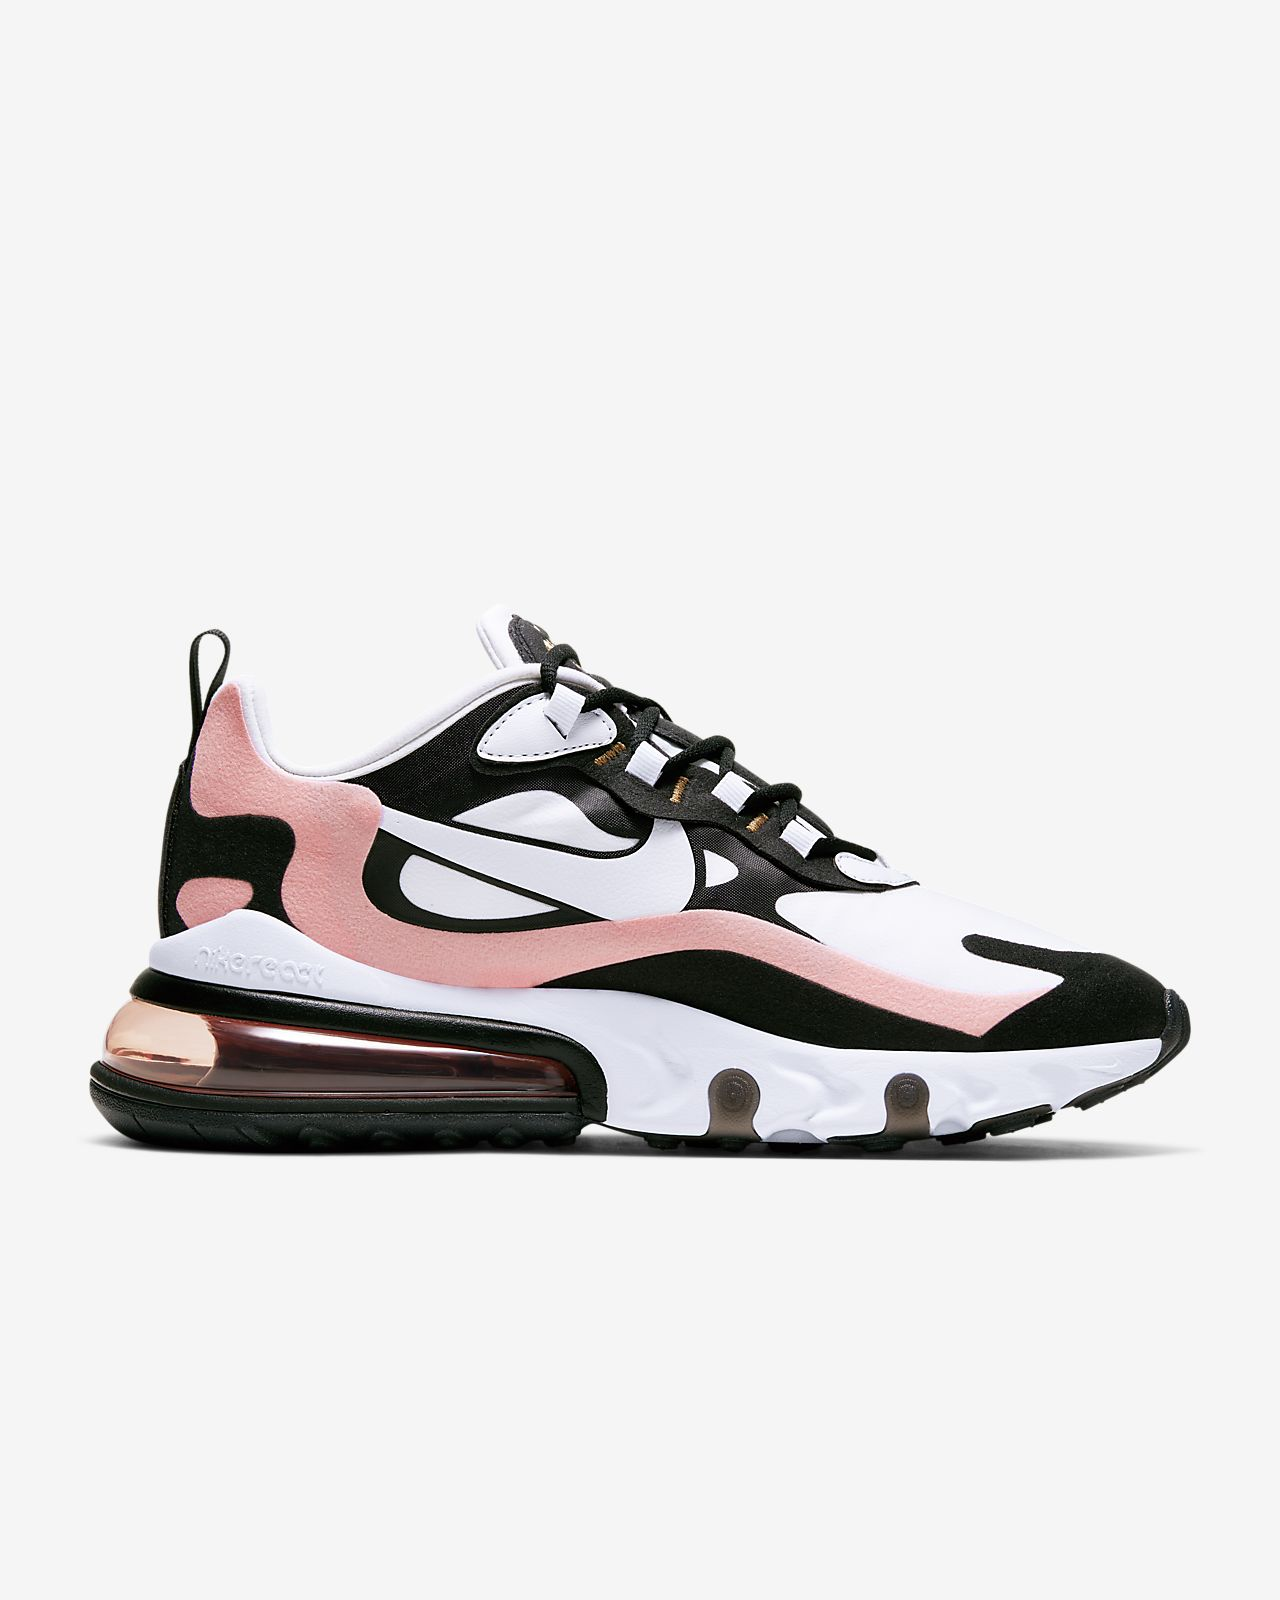 Nike Air Max 97 from Jd Sports on 21 Buttons